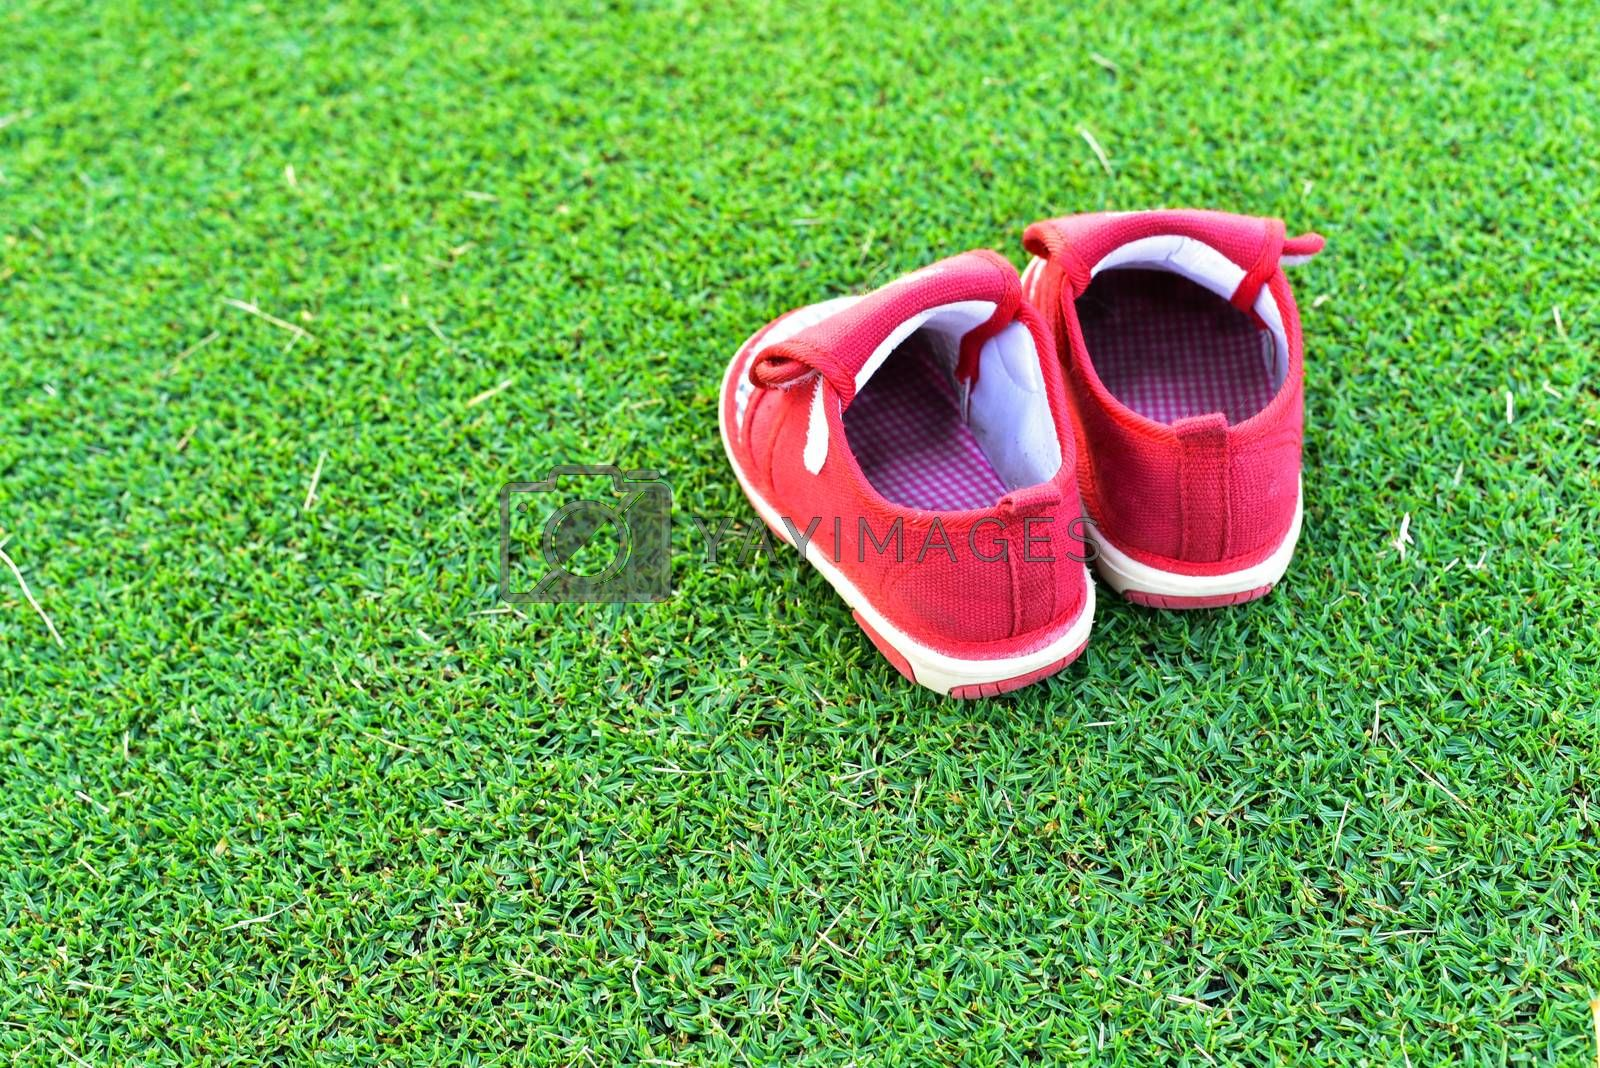 Little red shoes on grass